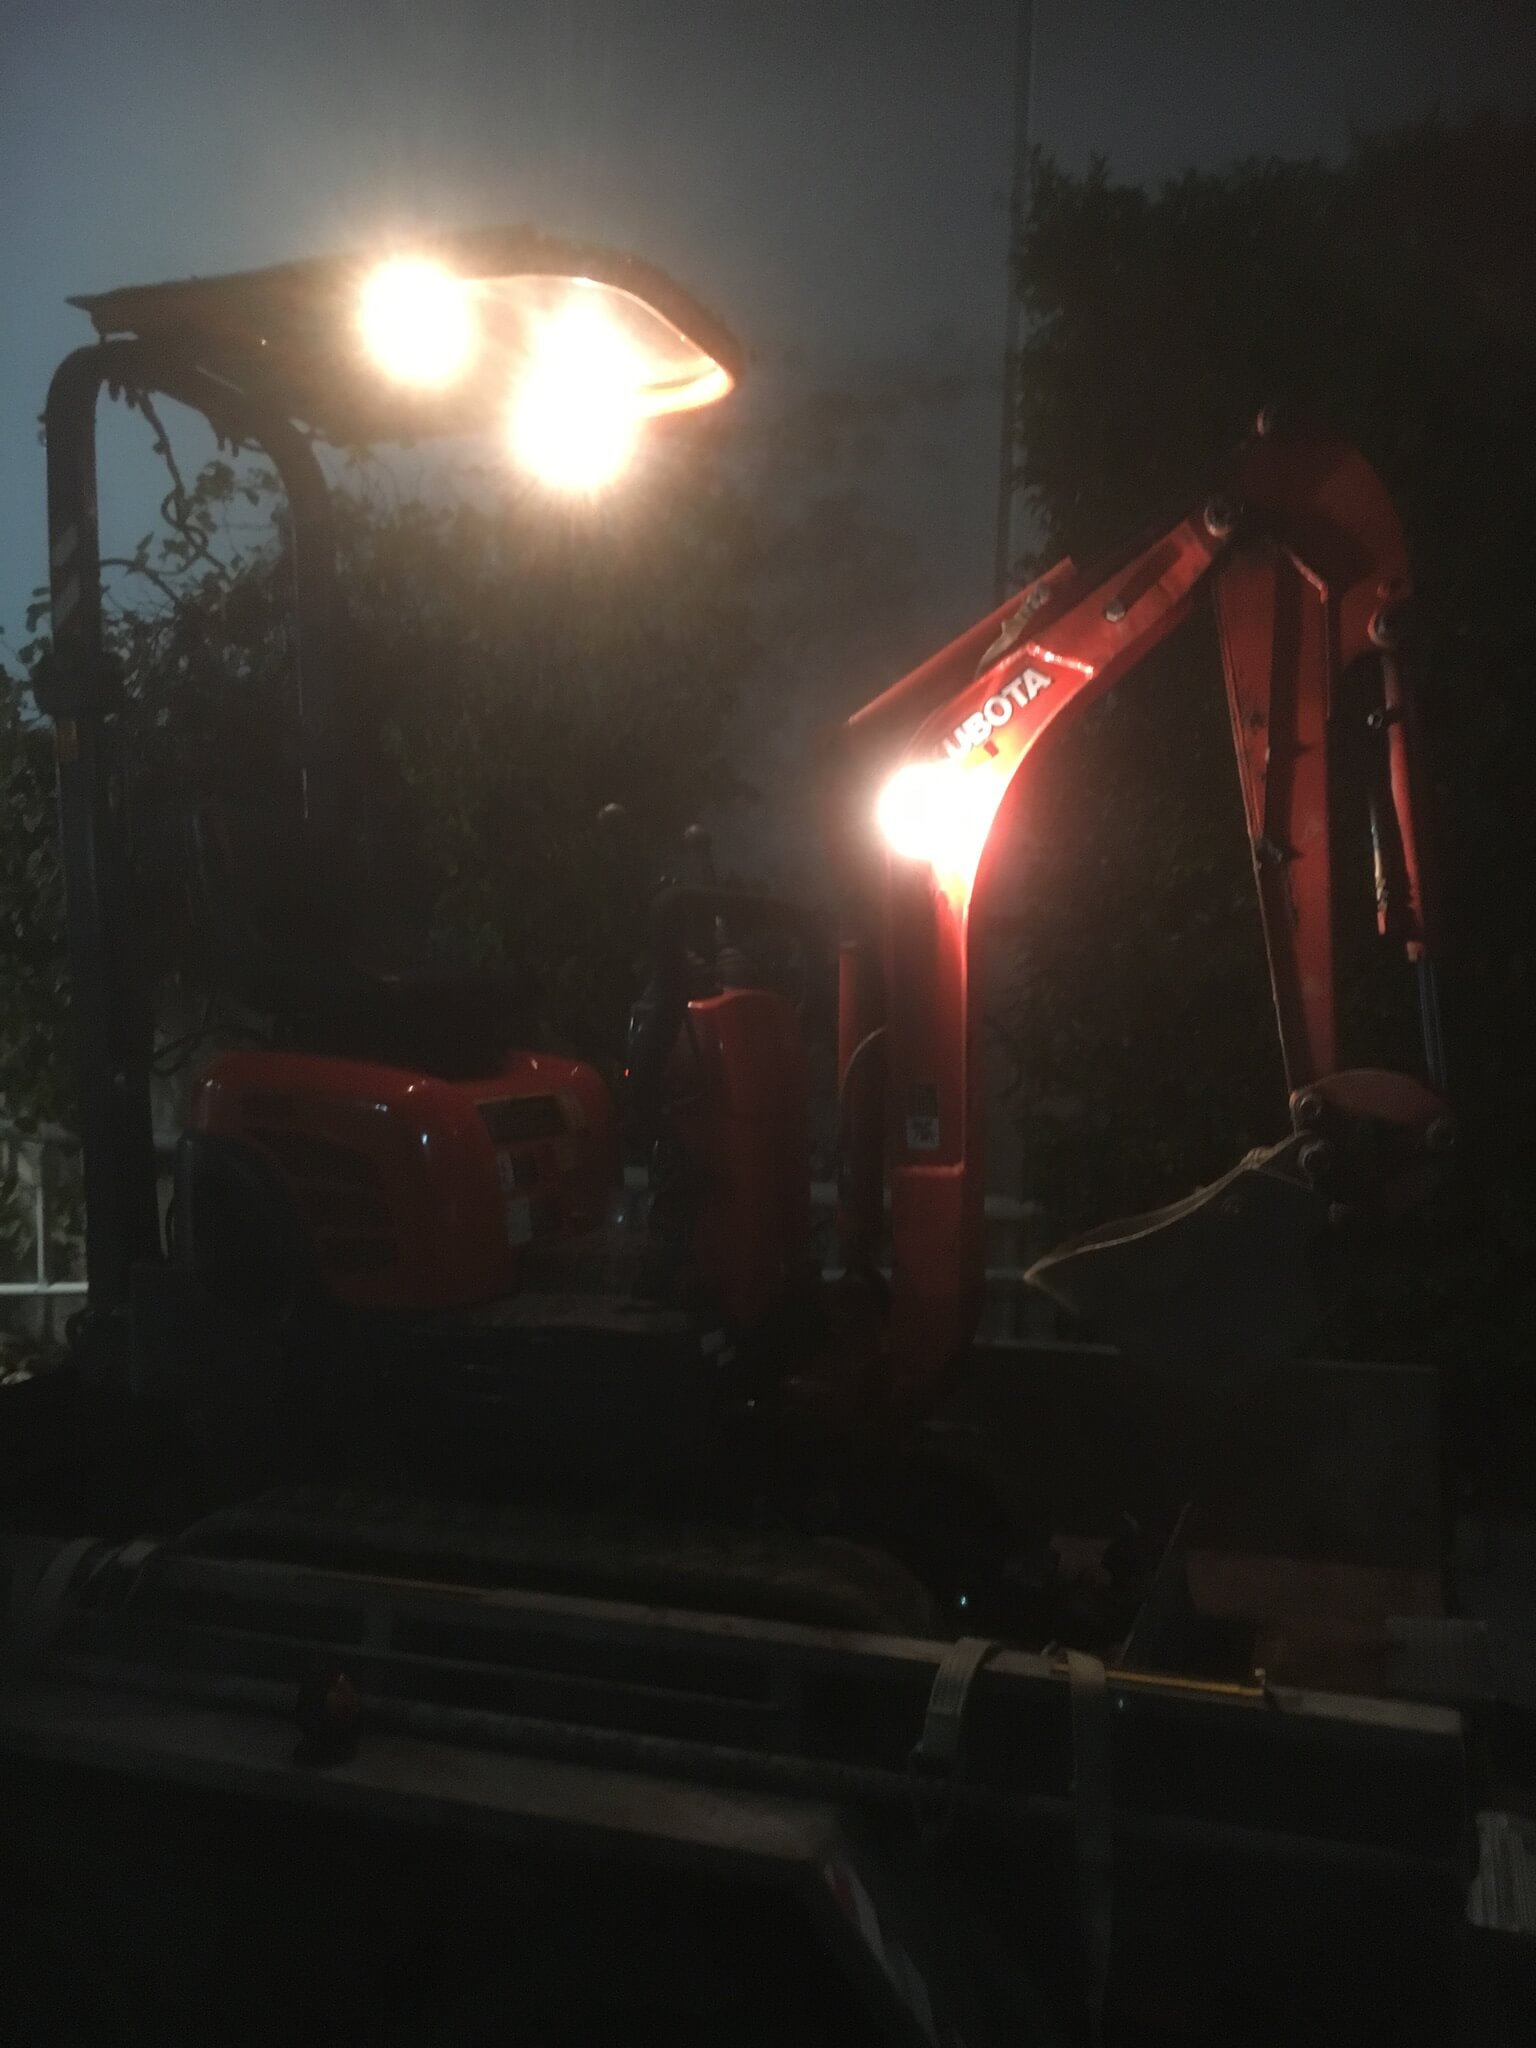 Everyday Plumbers Residential and Commercial Night Works - Onsite Works at Night 2040